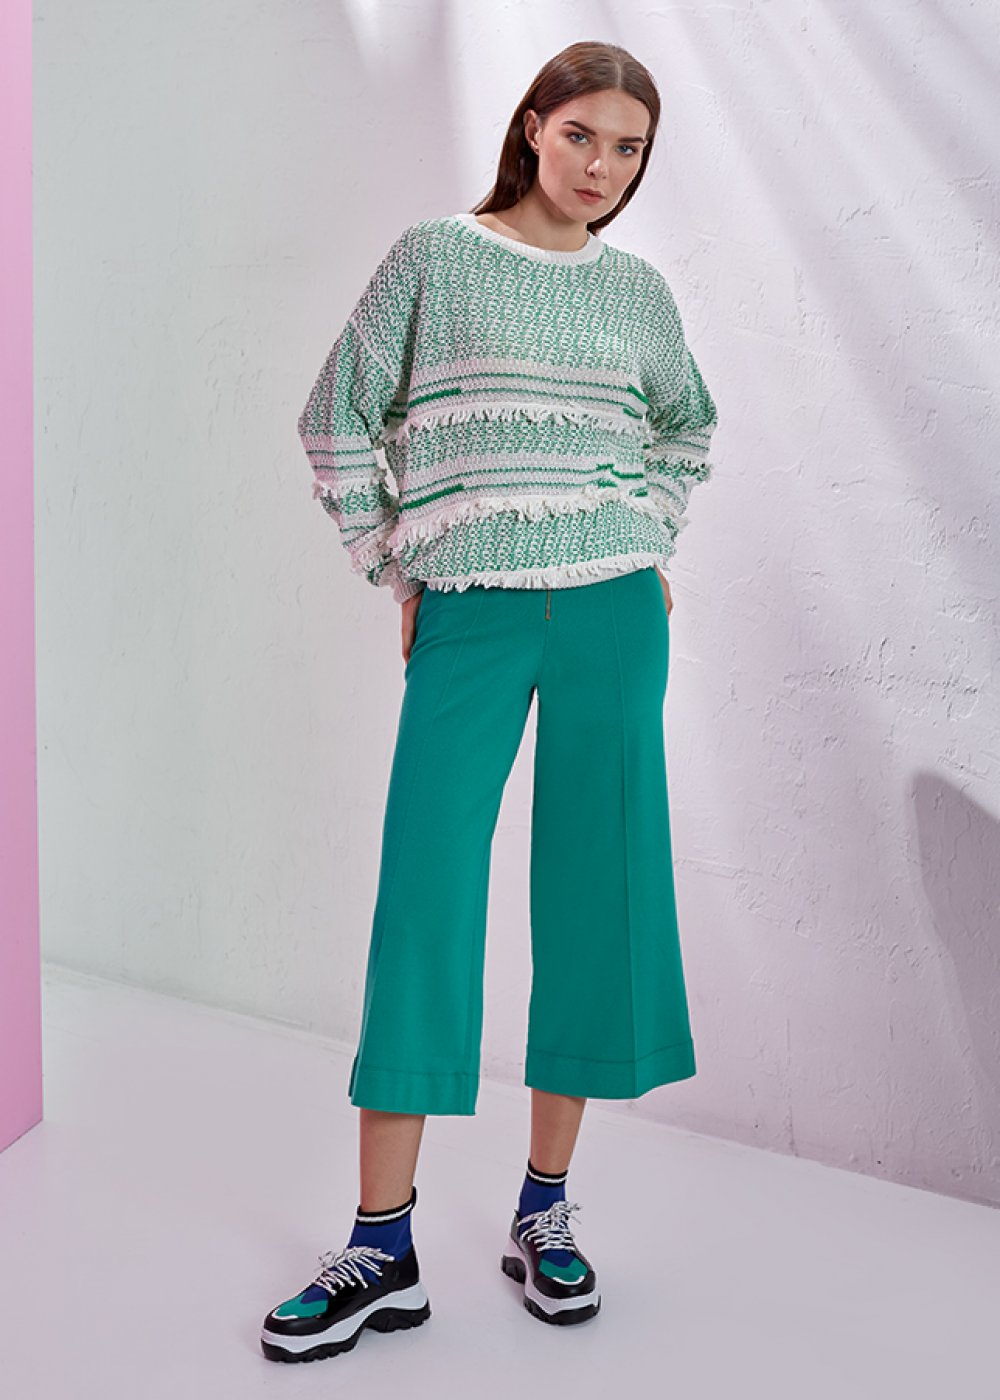 Tassel Detailed Jade Colour Sweater